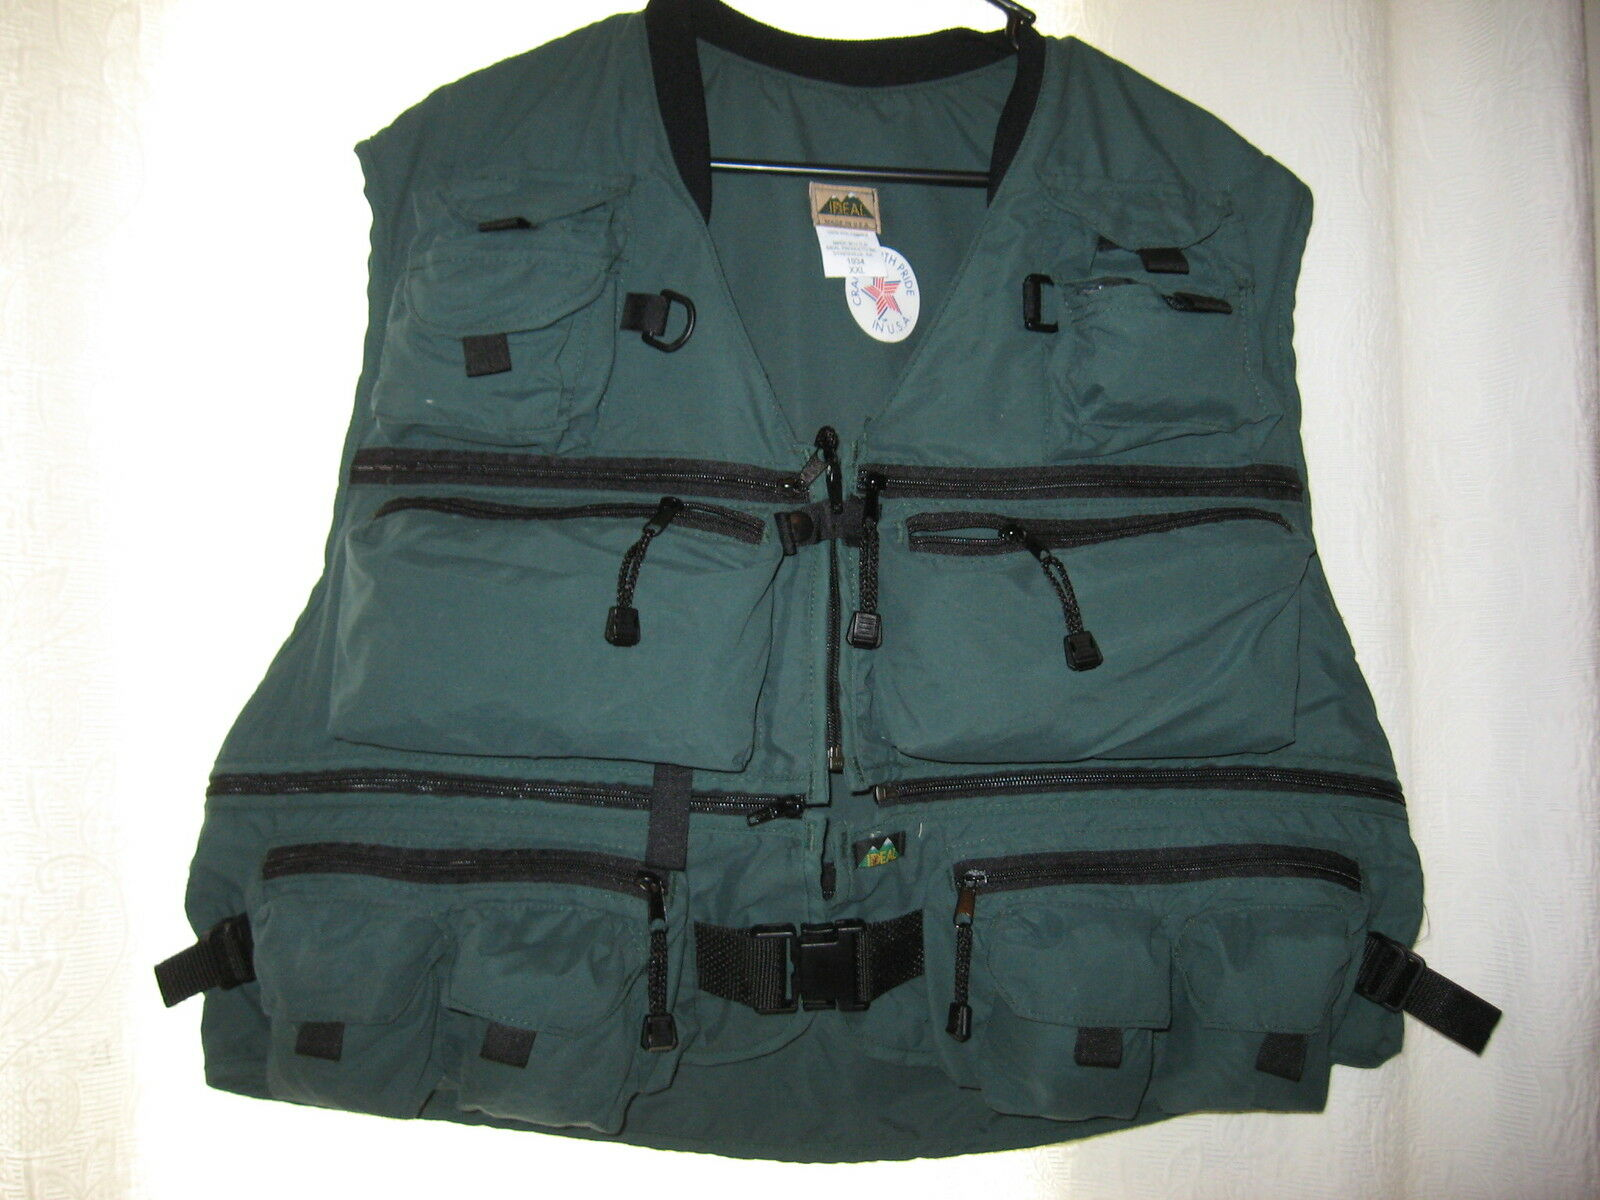 NEW Ideal Forrest Green Deluxe 3-IN-1 Microsuede Fly Fishing Vest, L XL 2XL 3XL